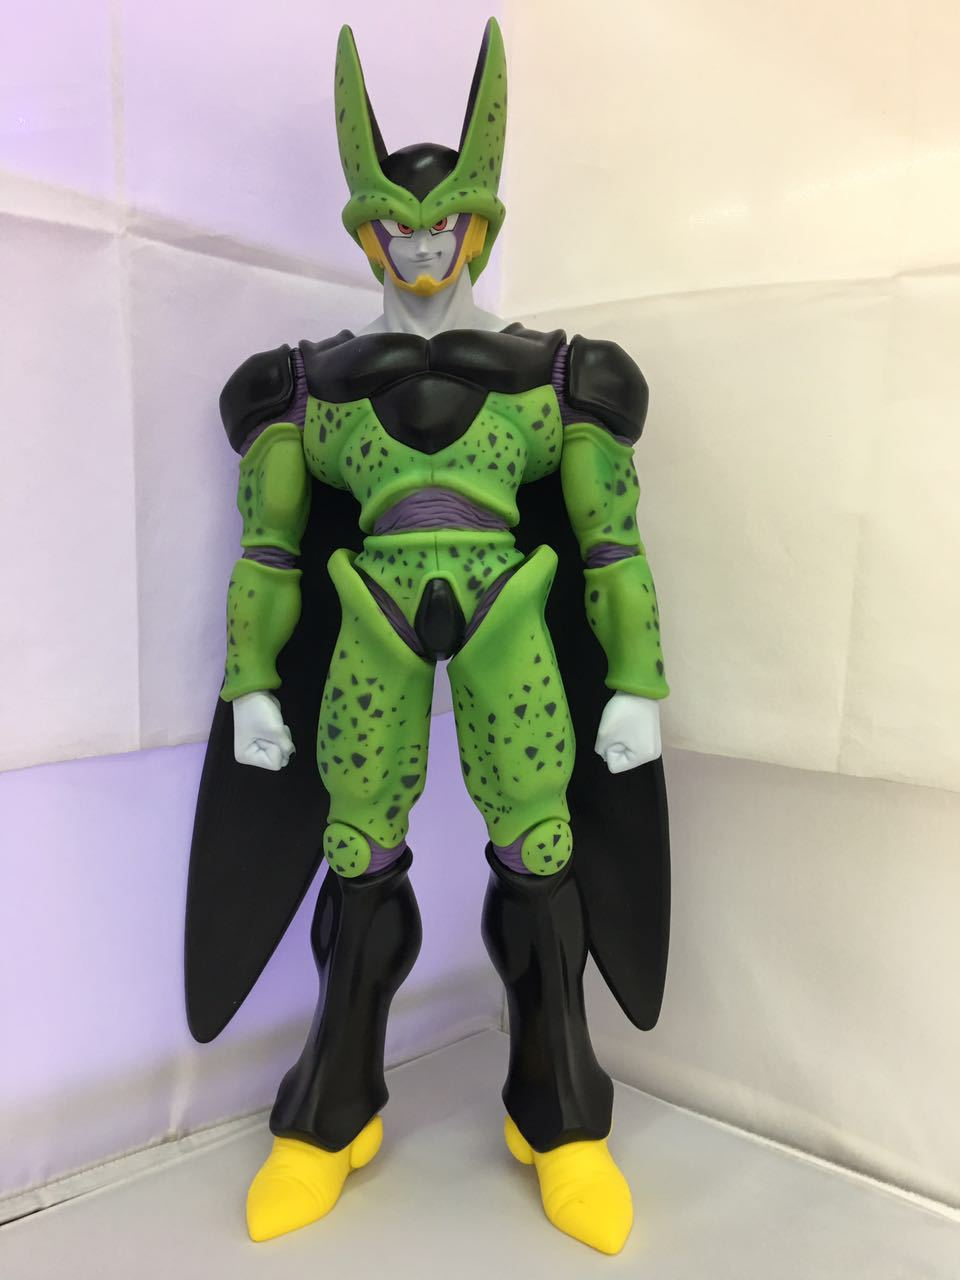 Anime Dragon Ball Z Perfect Cell Super Big PVC Action Figure Collectible Model Toy 48cm KT3906 new hot christmas gift 21inch 52cm bearbrick be rbrick fashion toy pvc action figure collectible model toy decoration